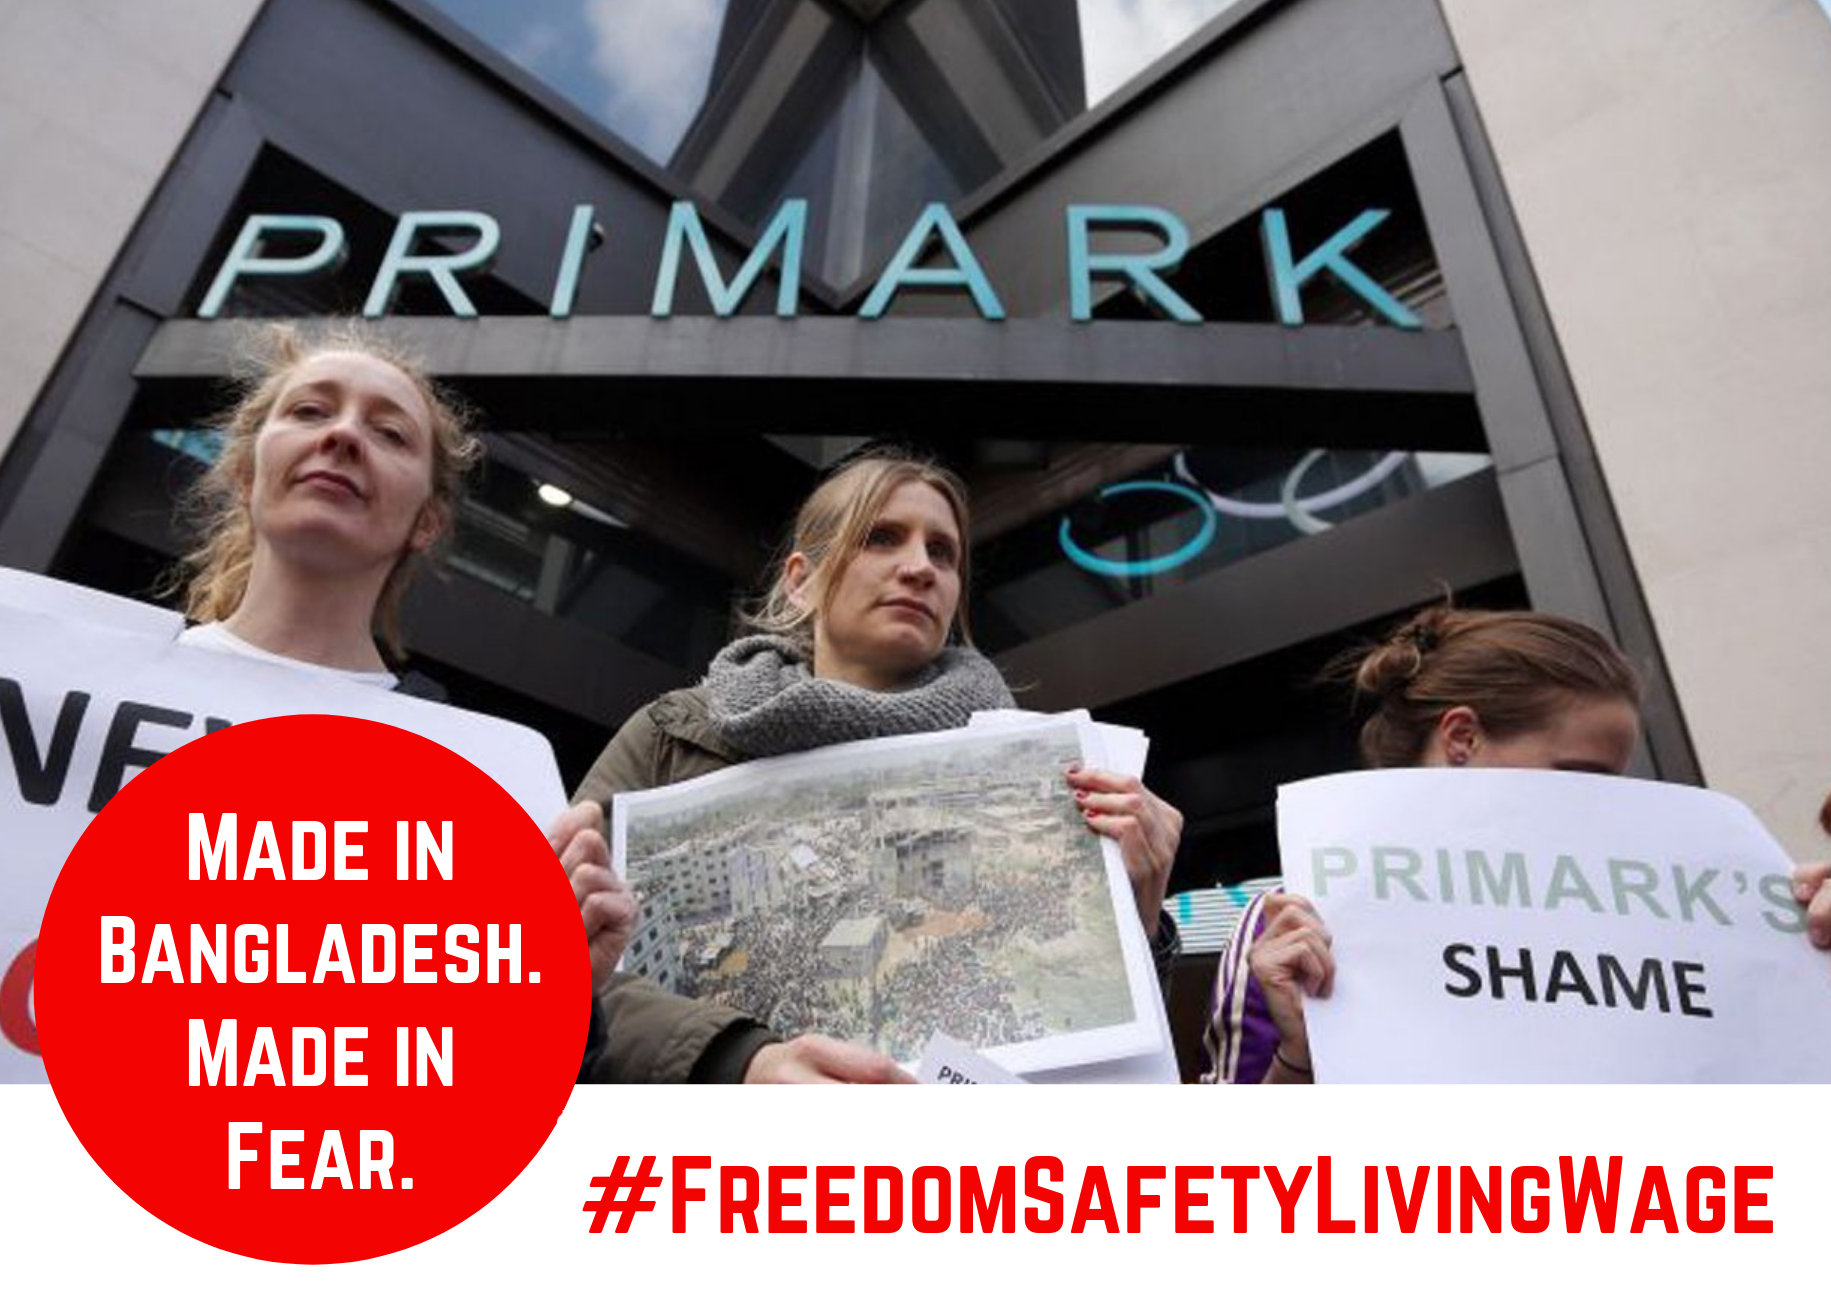 Tell Primark to stop the fear and support worker safety and rights